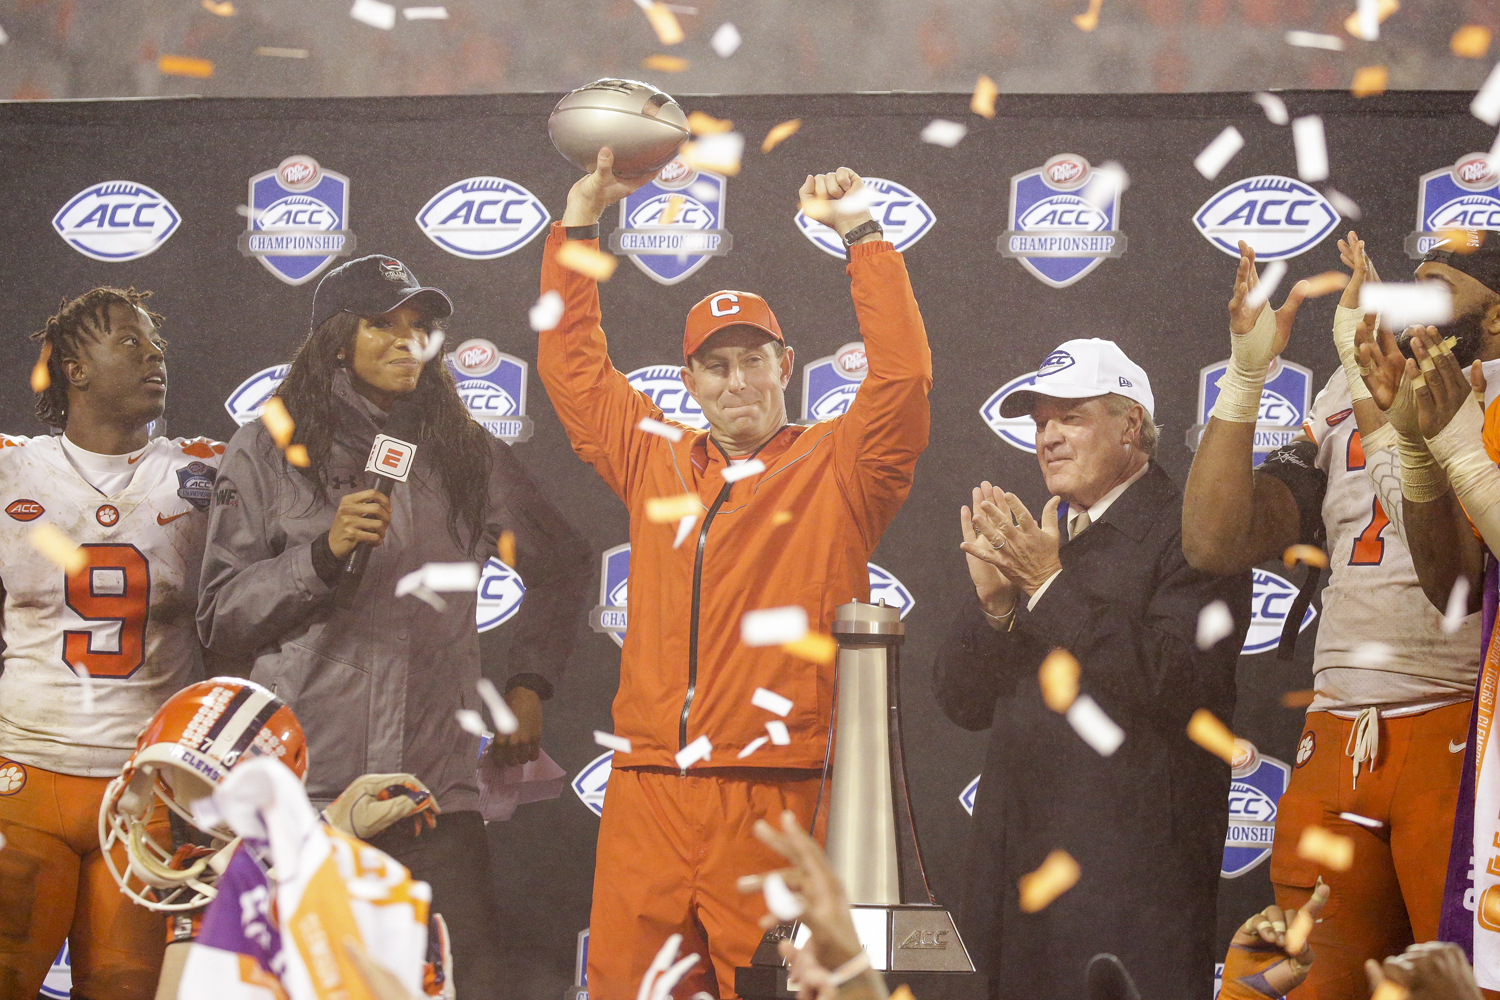 Clemson head coach Dabo Swinney celebrates the team's victory over Pitt with the ACC Championship trophy in his hand.